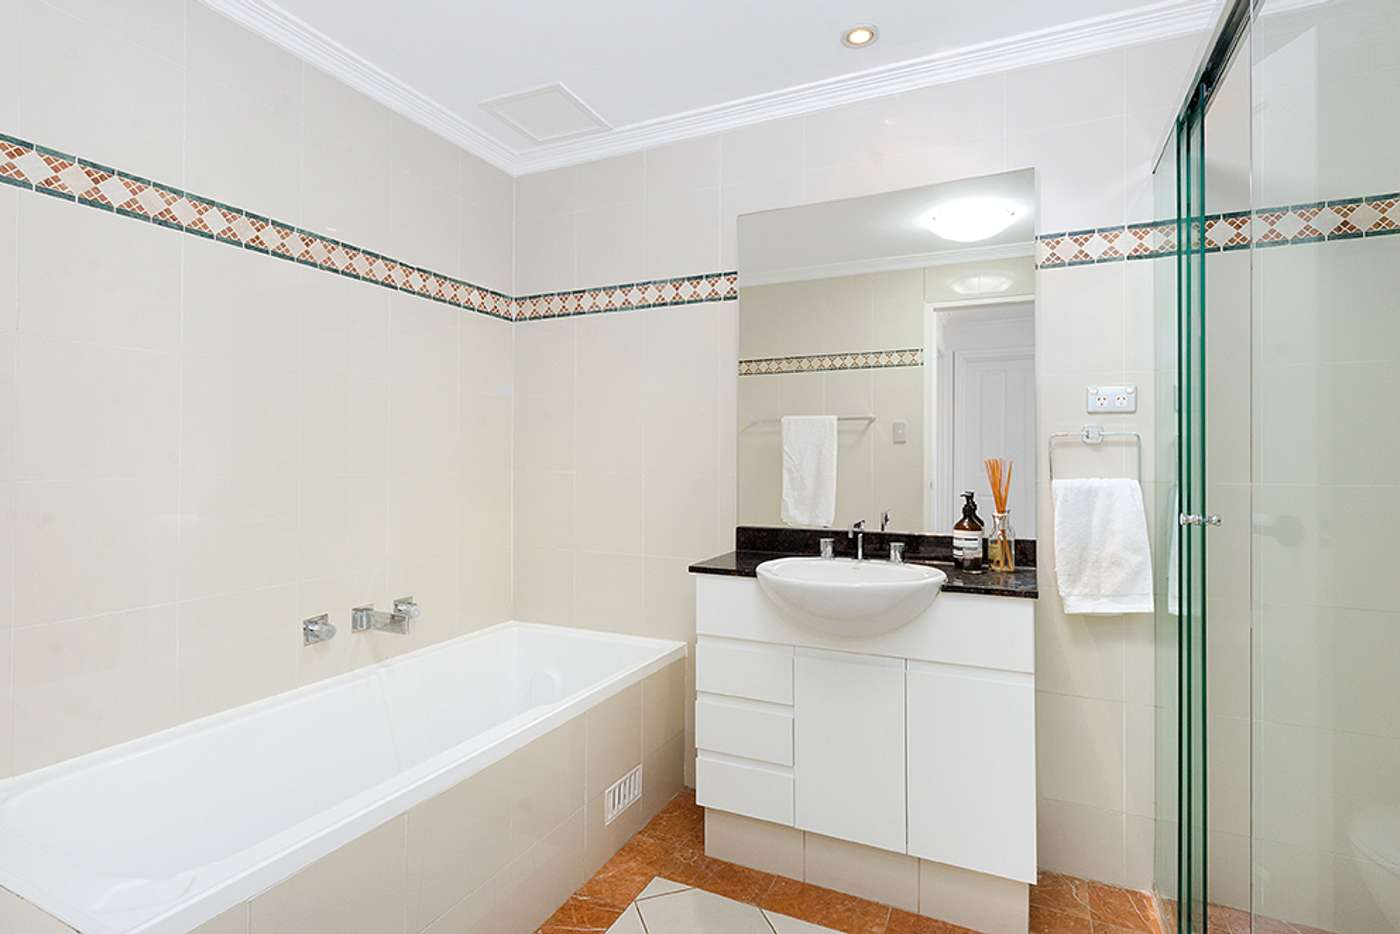 Seventh view of Homely apartment listing, 18/1 Batty Street, Rozelle NSW 2039